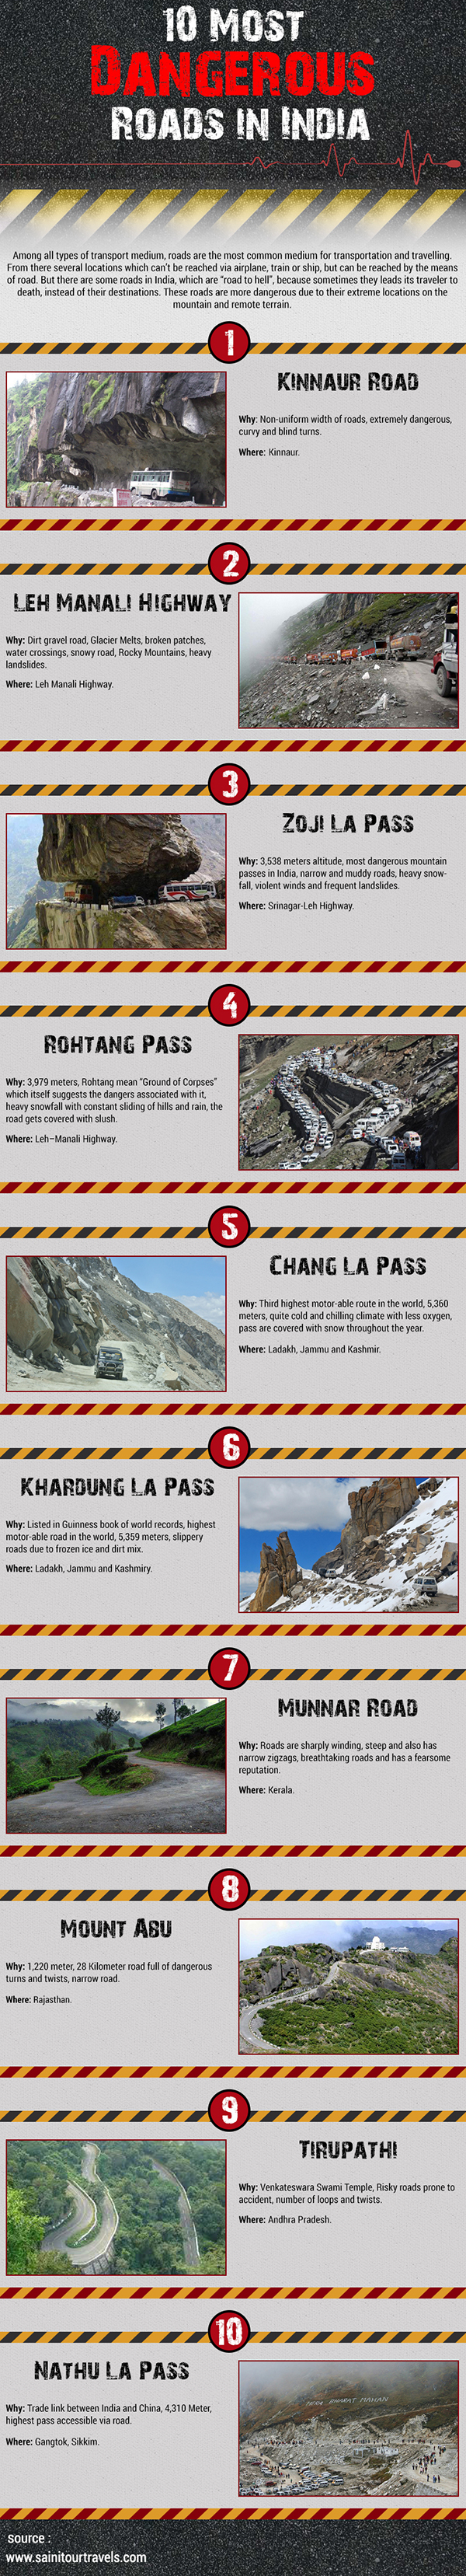 10 Most Dangerous Roads in India